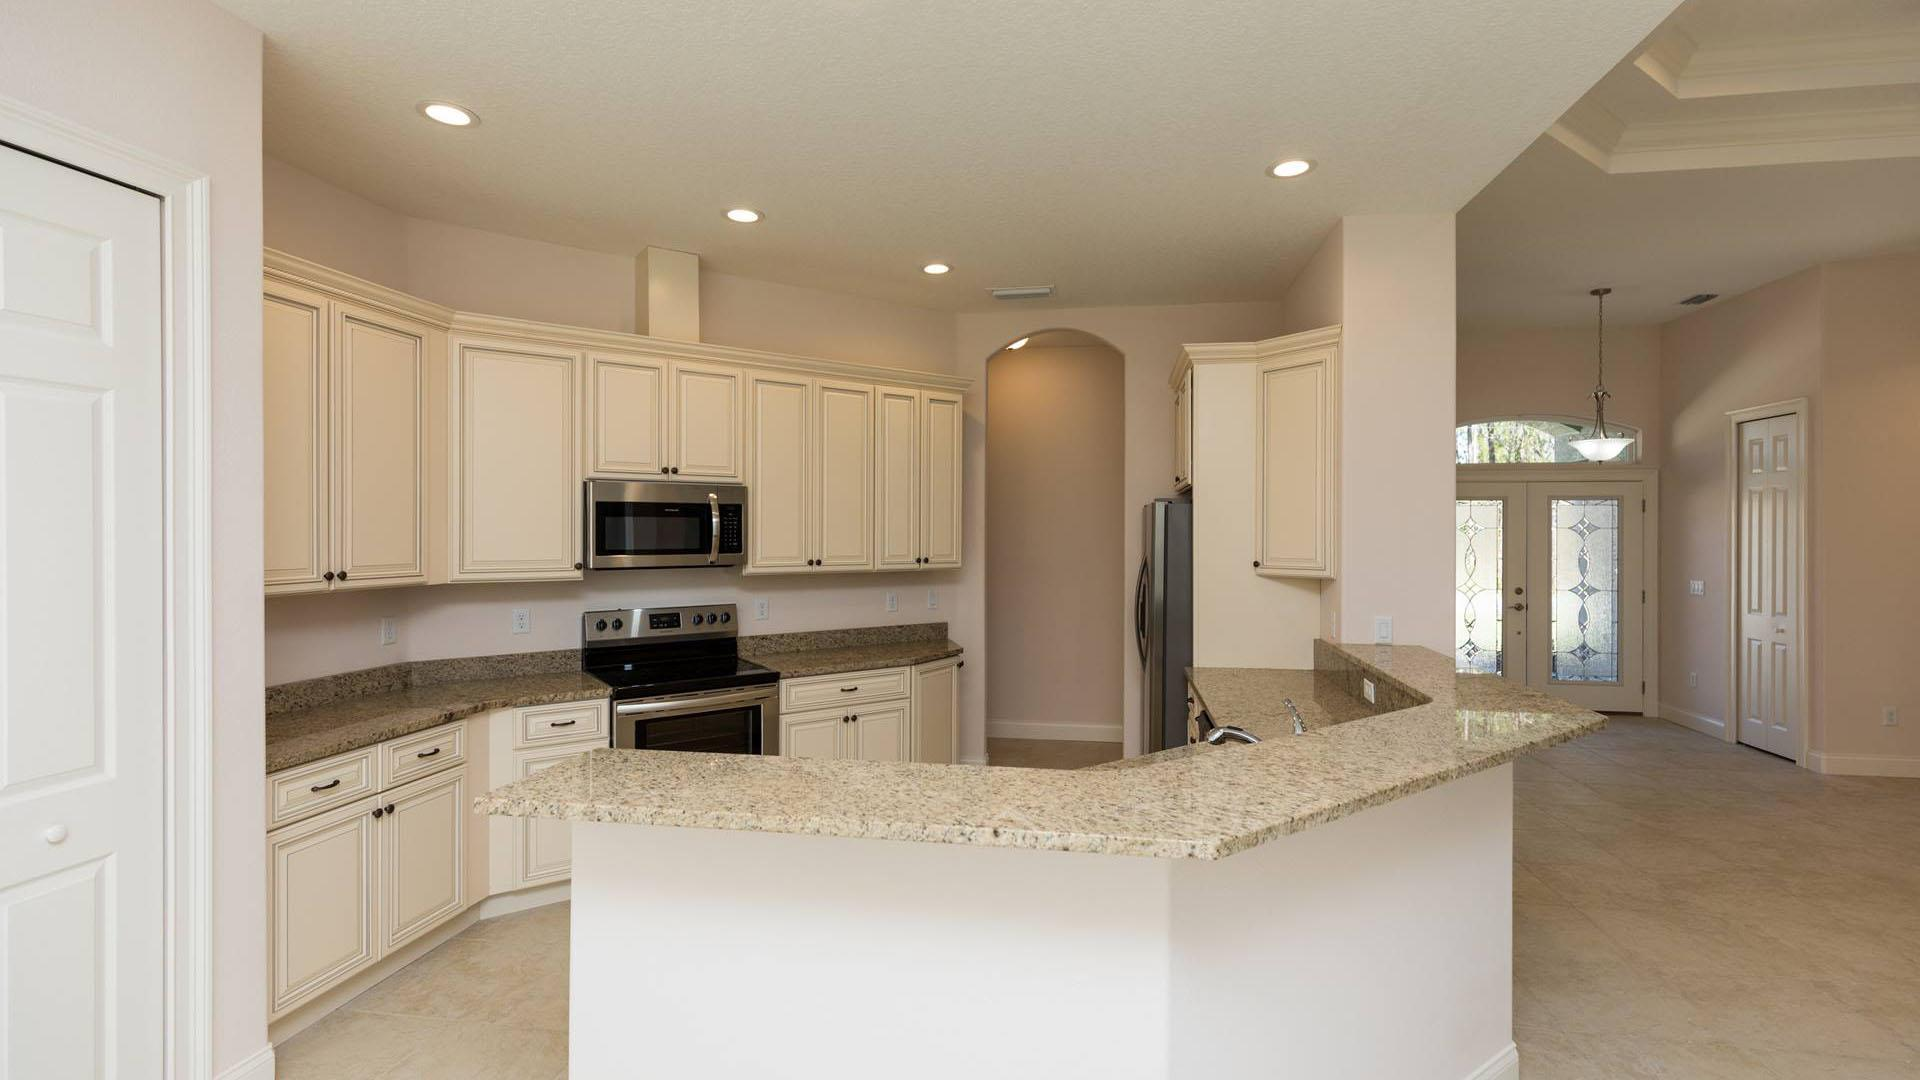 Kitchen featured in the LUCY. Certified Green home By Florida Green Construction